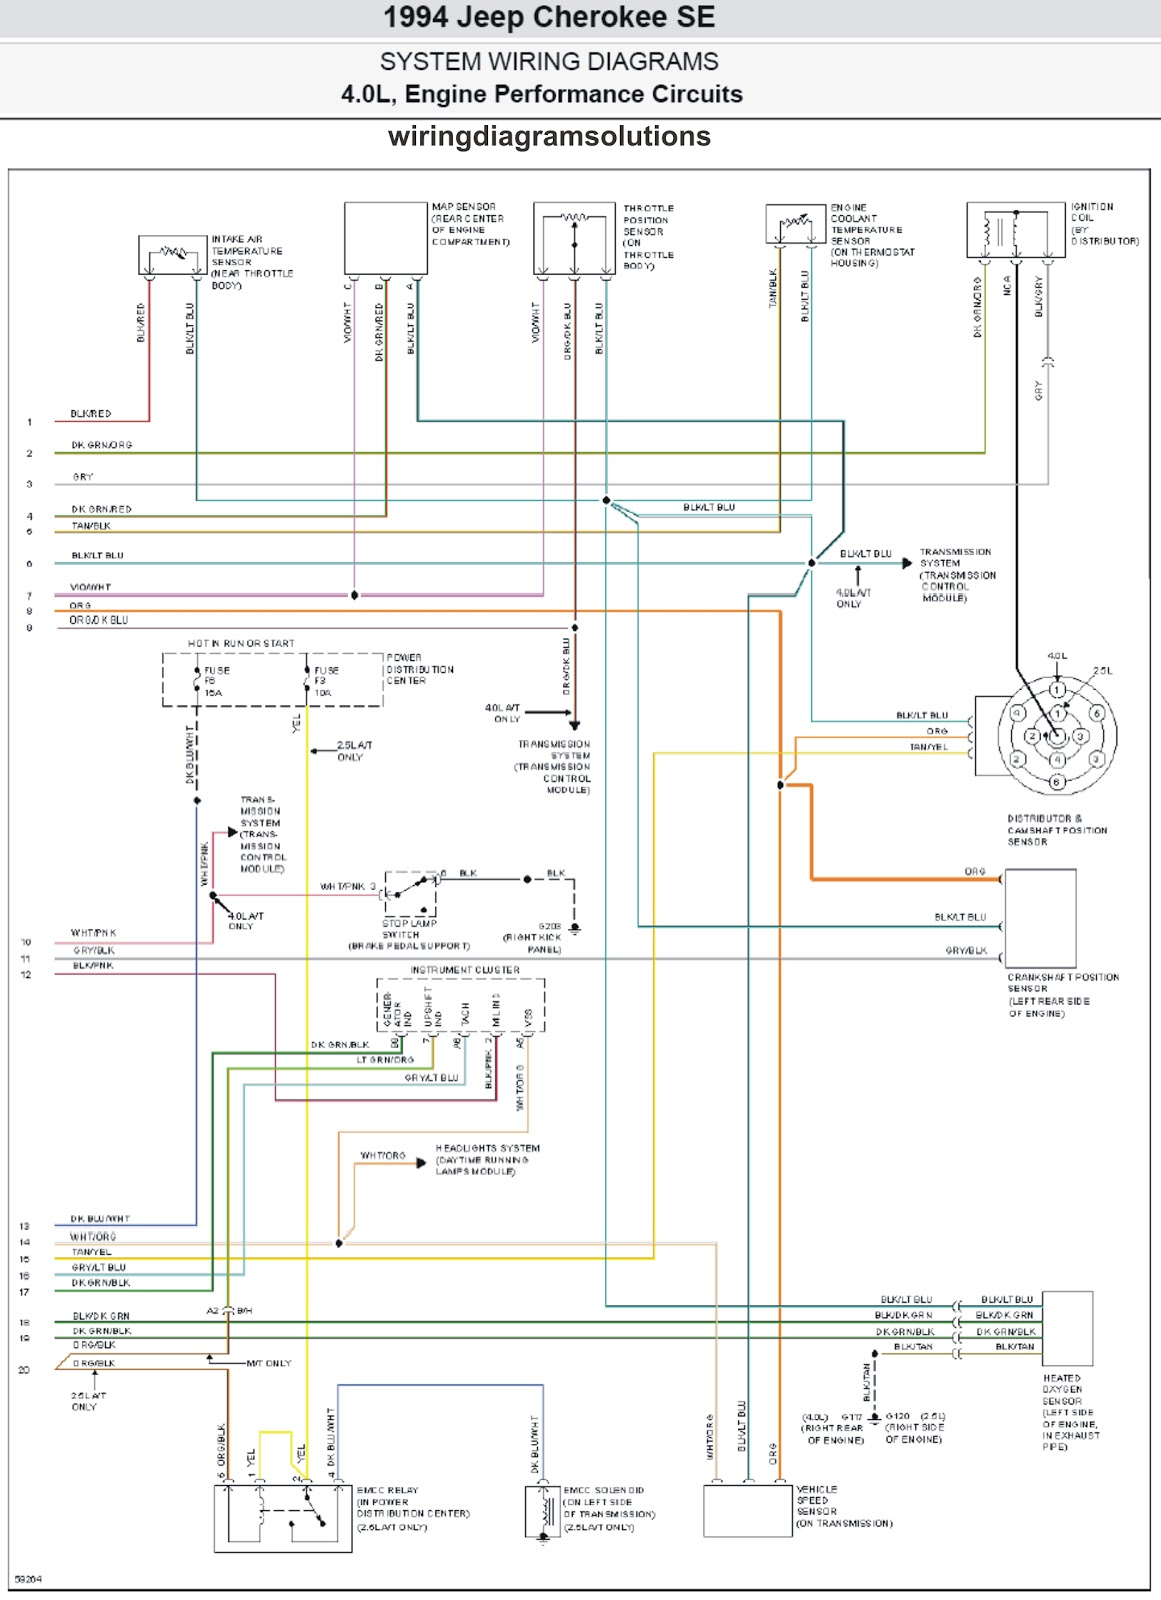 jeep cherokee wiring diagram 1996 may 2011 schematic    wiring       diagrams    solutions  may 2011 schematic    wiring       diagrams    solutions